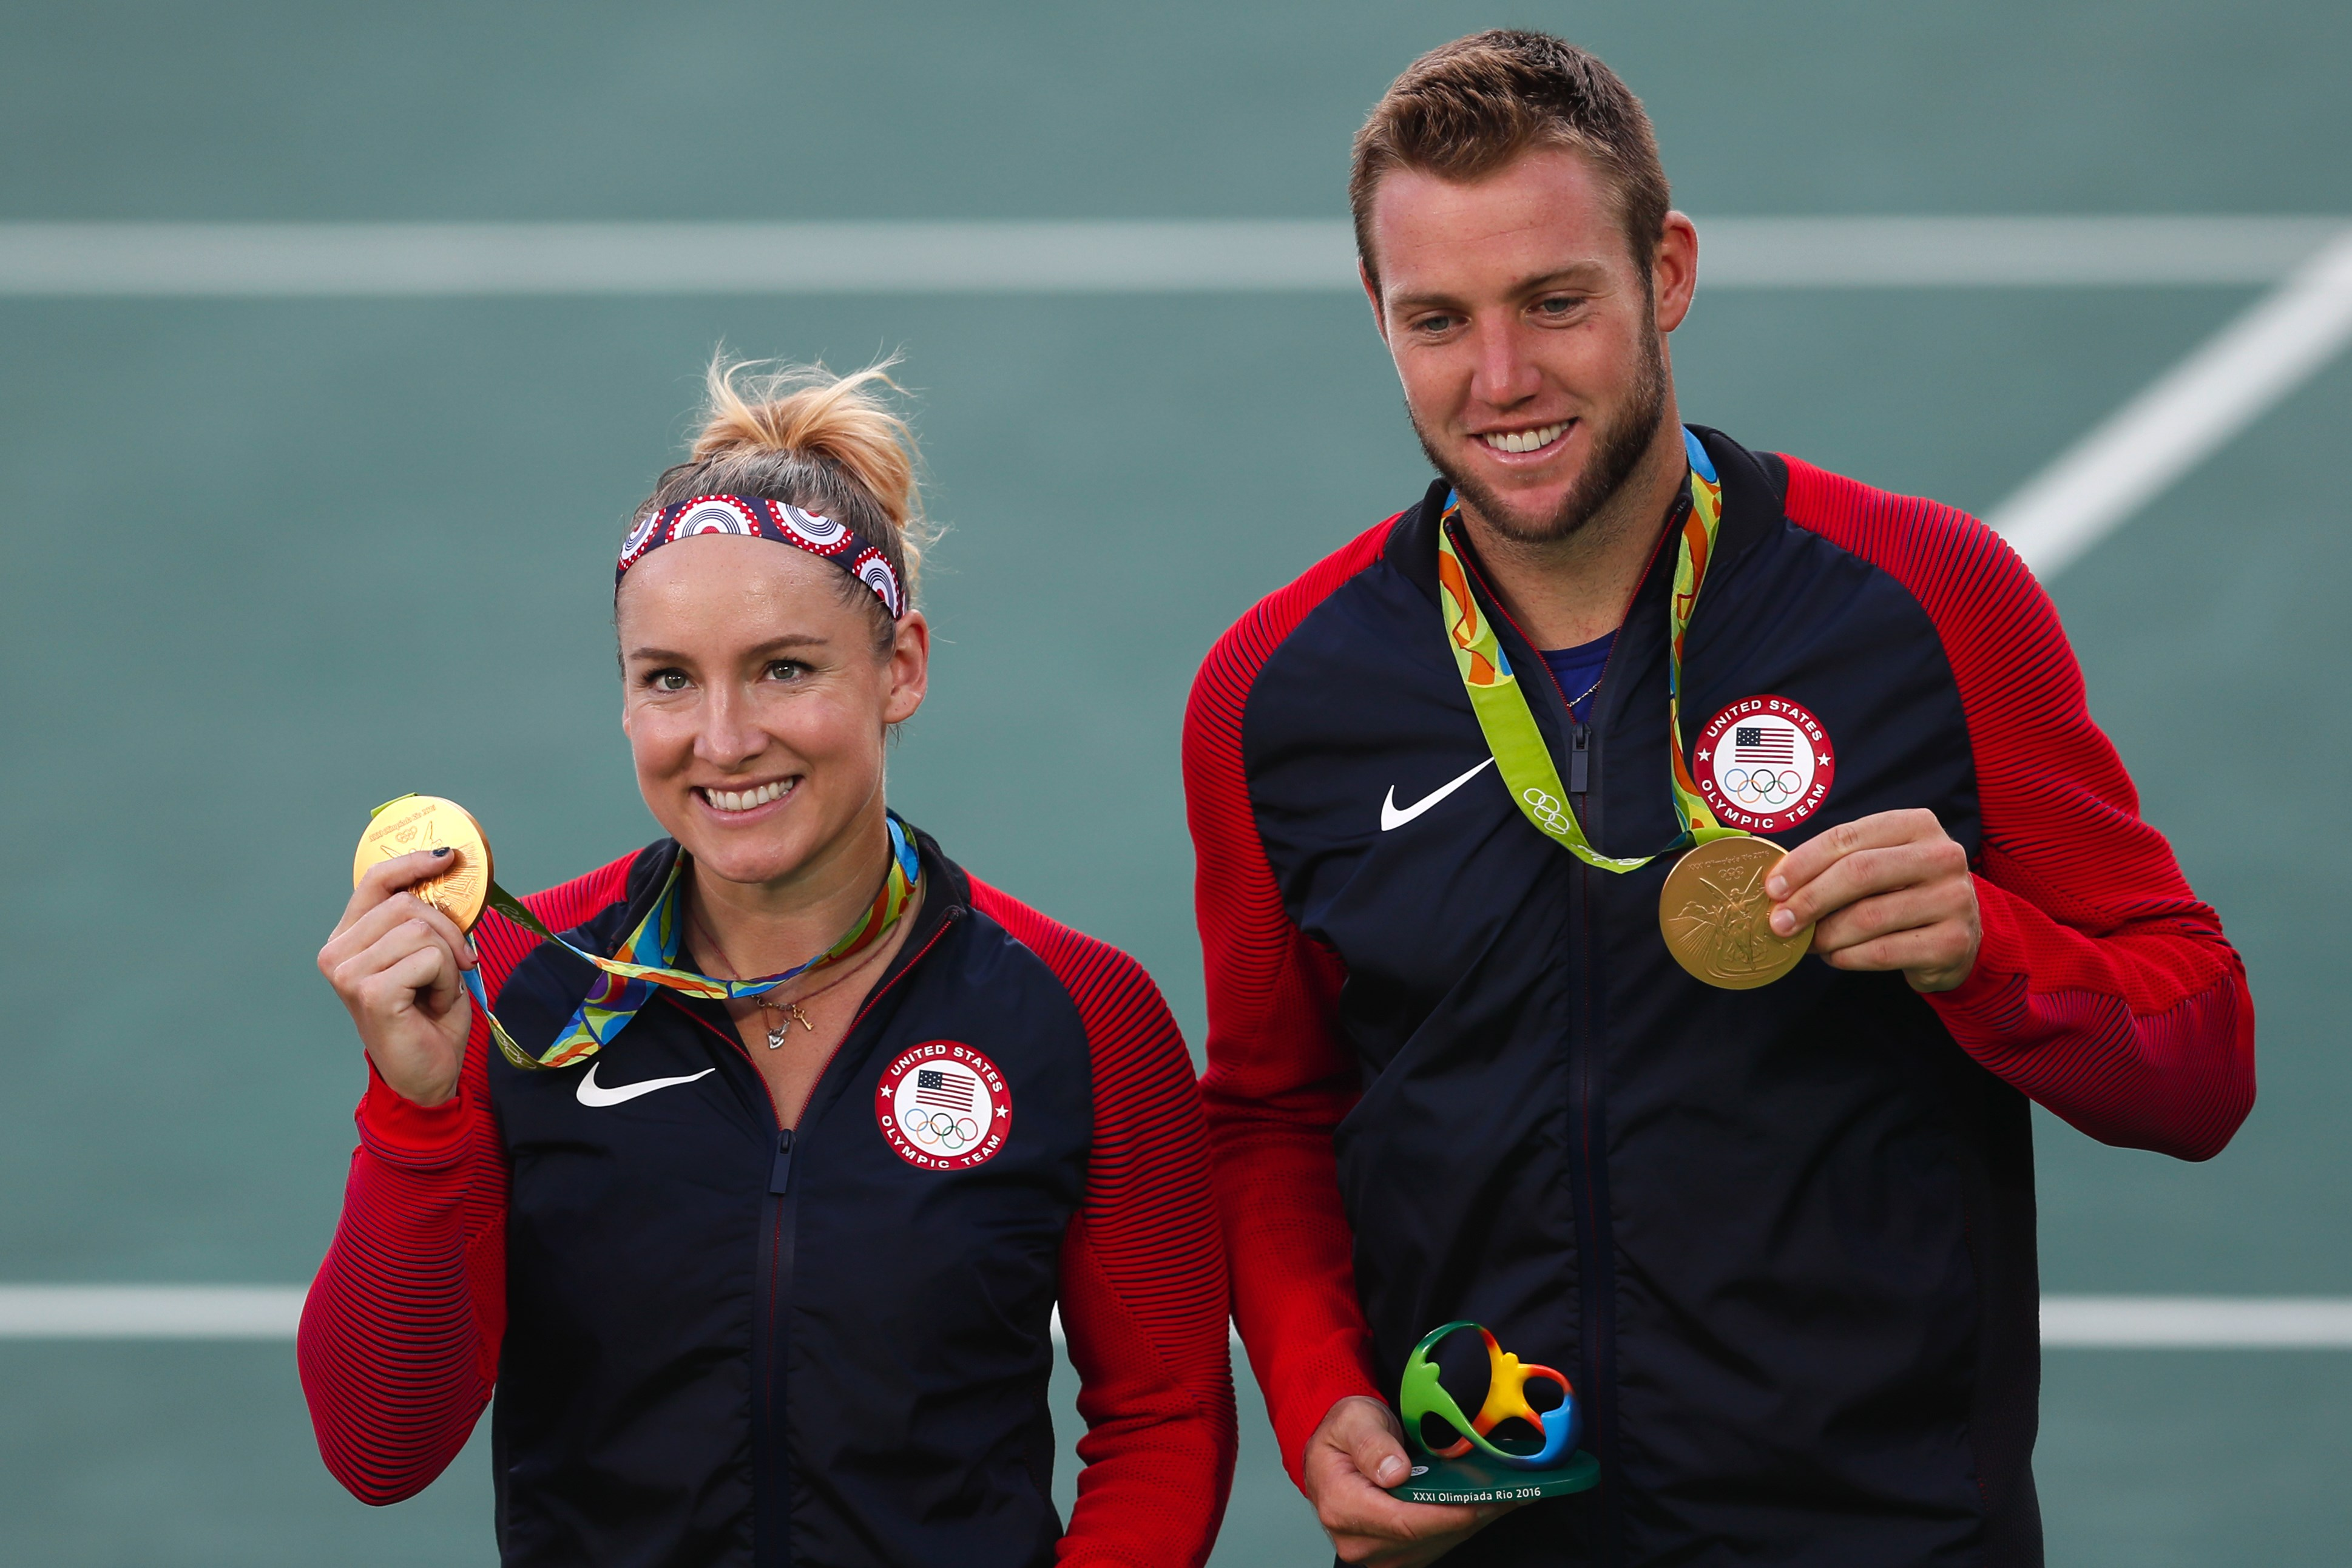 Gold medalists Bethanie Mattek-Sands, of the United States, and partner Jack Sock, pose with their medals during the medals ceremony of the mixed doubles tennis competition at the 2016 Summer Olympics in Rio de Janeiro, Brazil, Sunday, Aug. 14, 2016. Venu